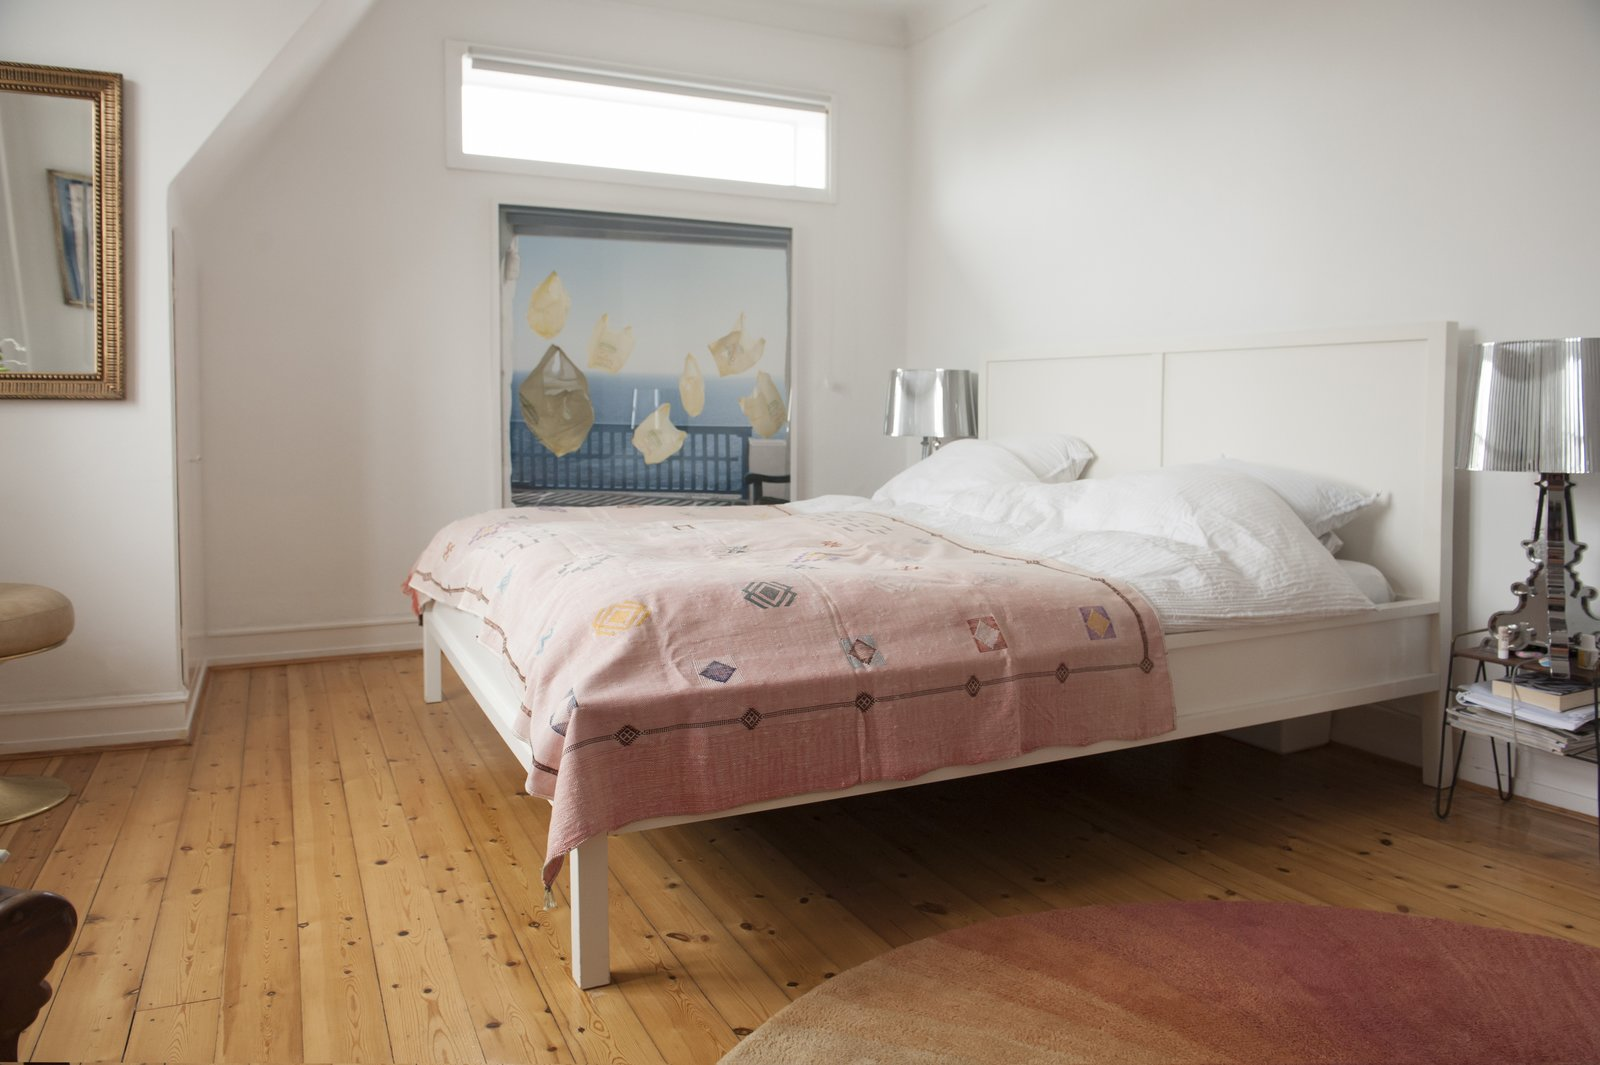 Bedroom, Bed, Night Stands, Table Lighting, and Medium Hardwood Floor Color plays a key role in the master bedroom, which plays with pinks and blues.  Colorful & Eclectic Danish Home by Petra Ford